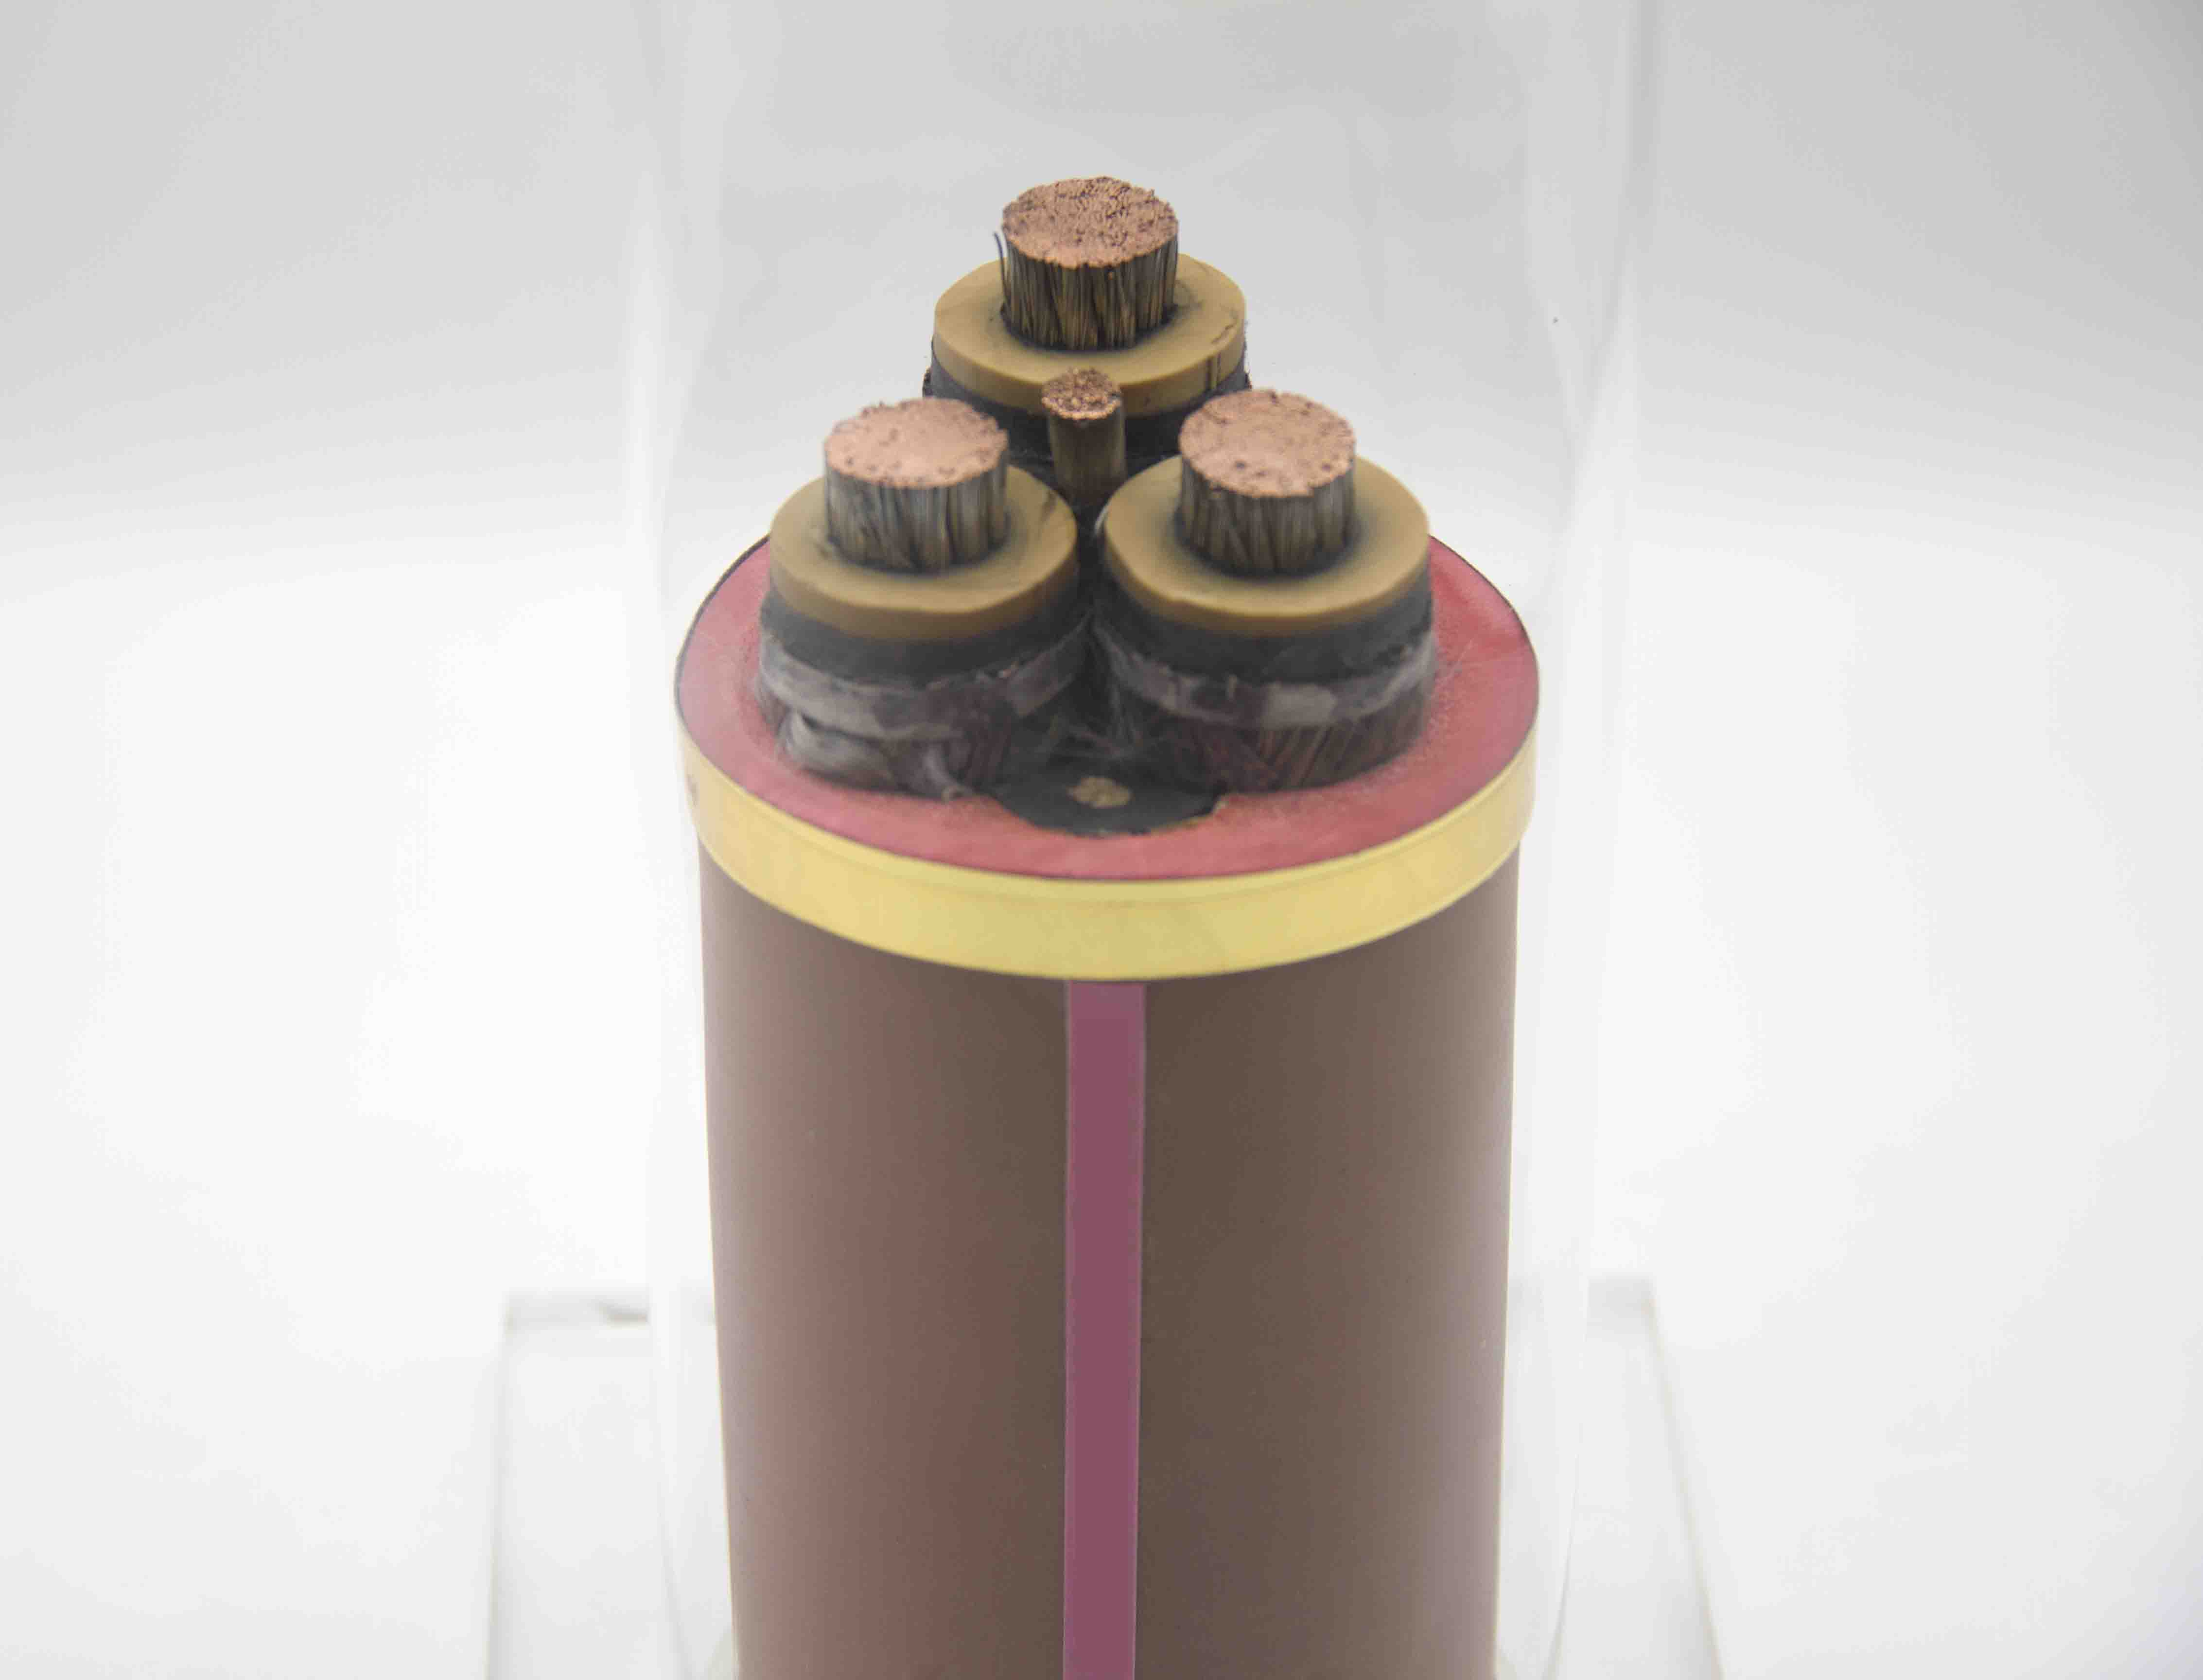 Rubber cabtyre cable